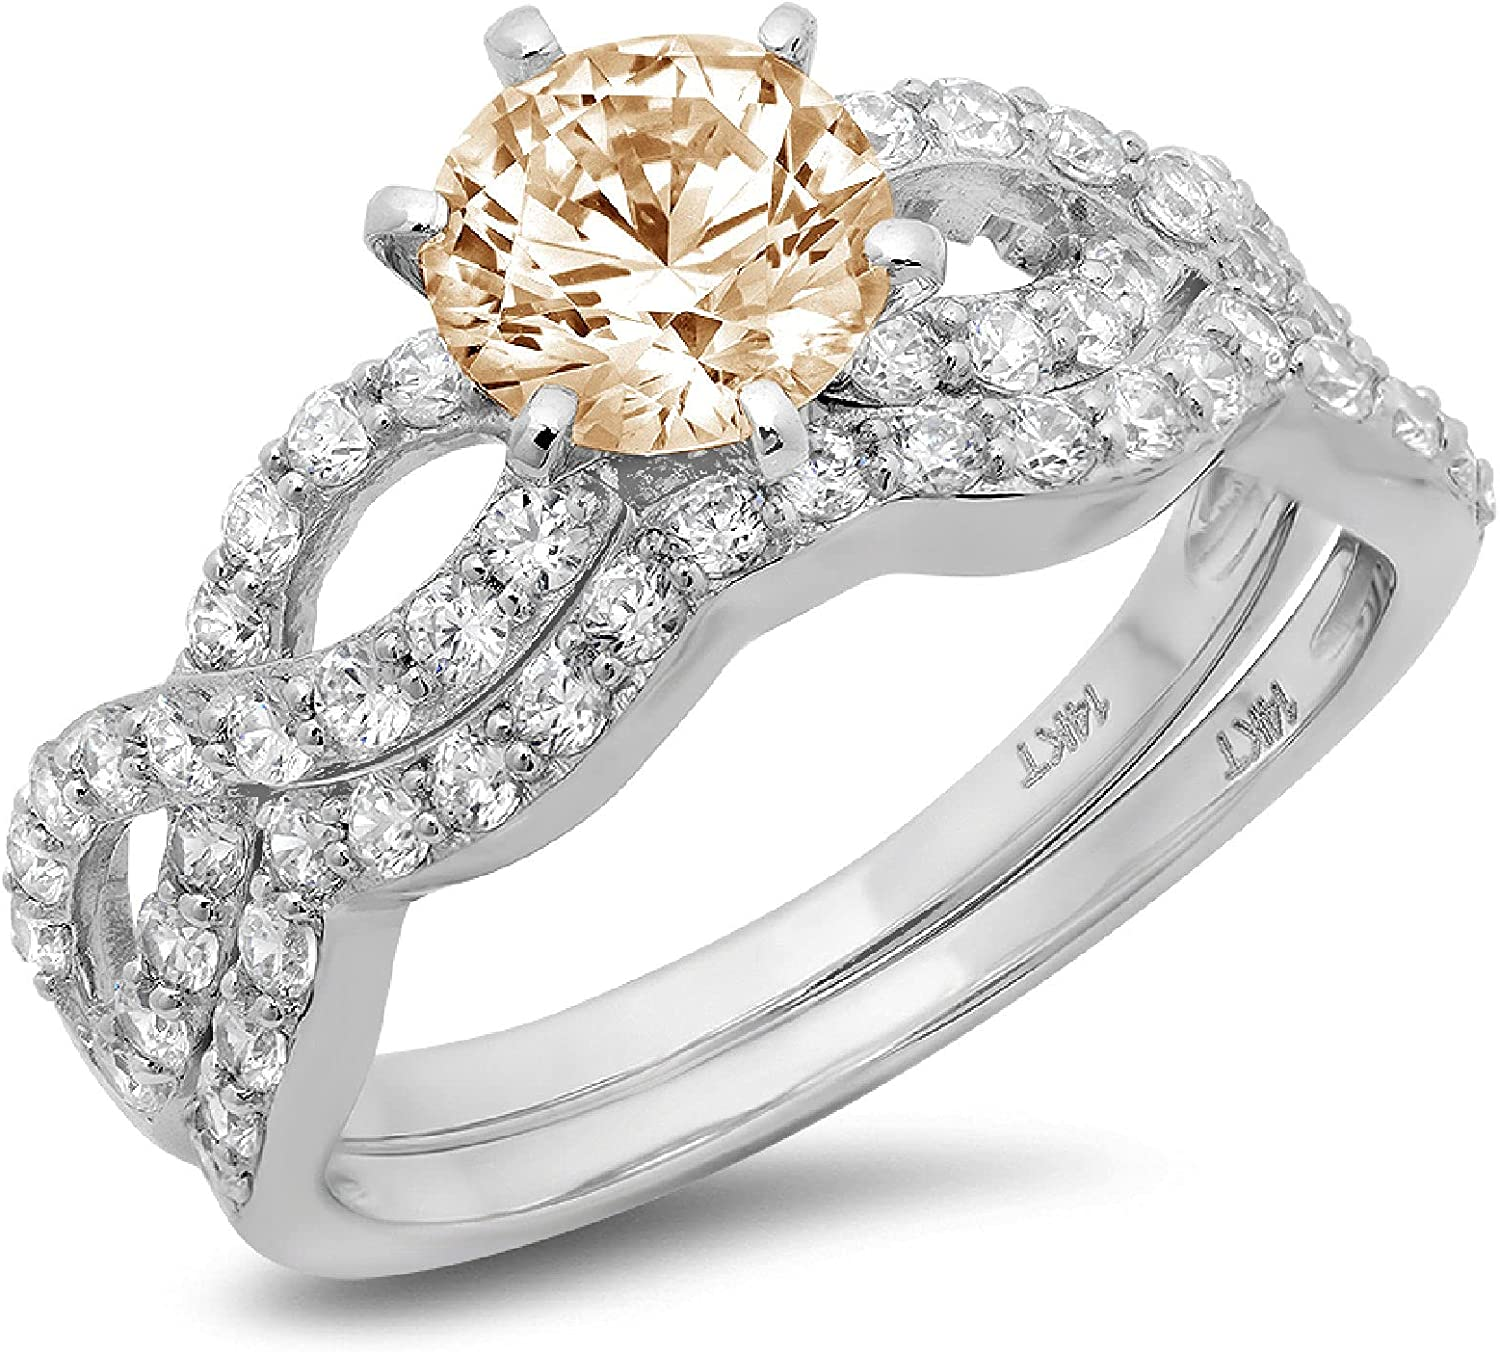 1.55ct Miami Mall Round Cut Halo Max 65% OFF Pave Solitaire Flawless Split Shank Accent